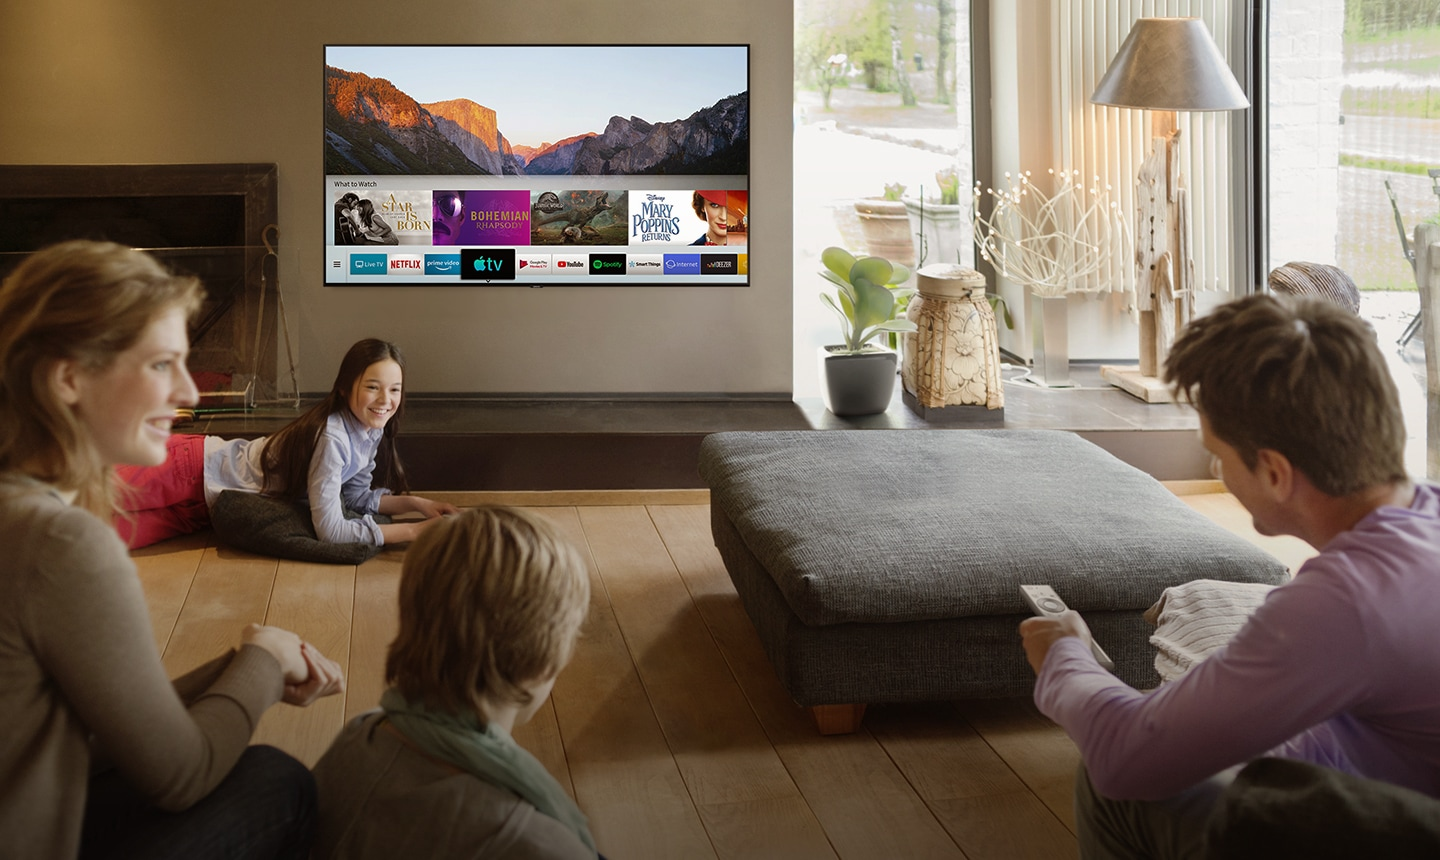 People are watching Smart TV in the living room and Smart Hub UI is displayed over a nature background image on TV screen.